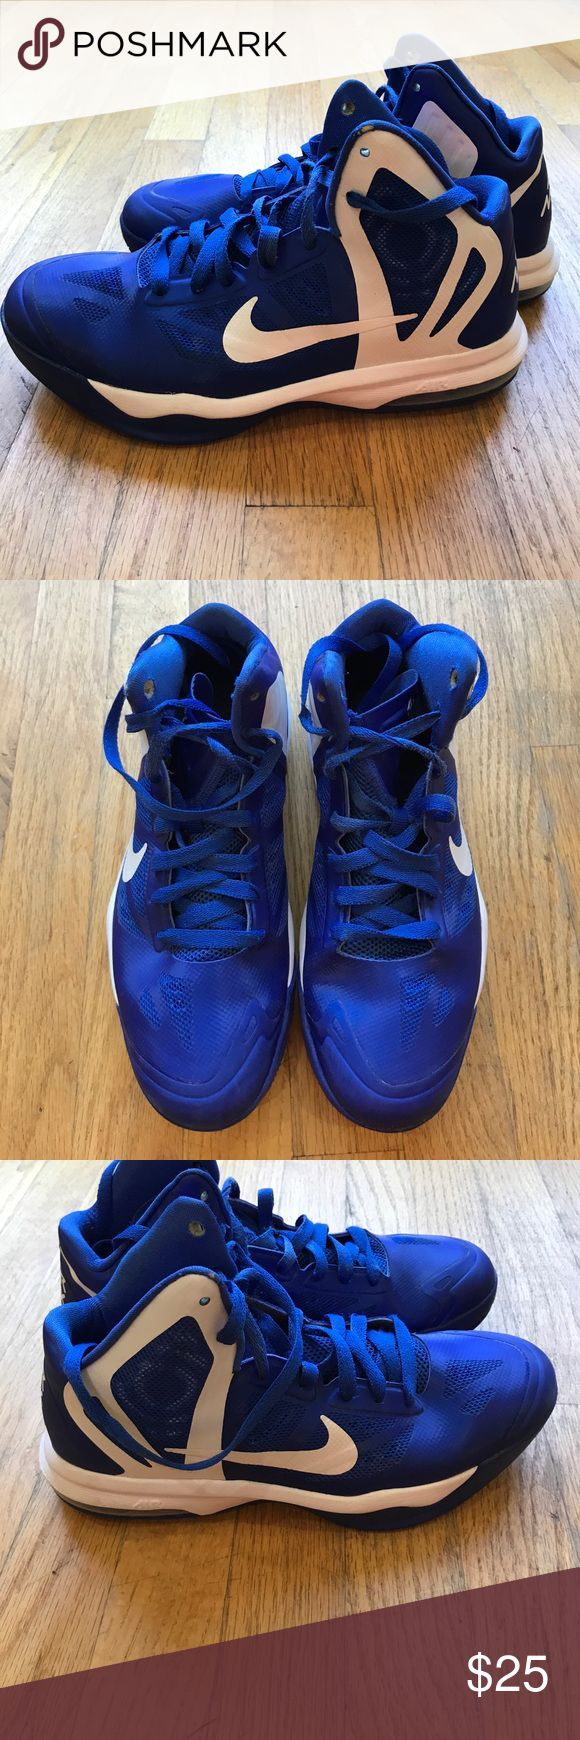 "Nike Air Max Hyper Aggressor Basketball Sneaker Excellent pre-owned condition Nike men's mid top sneaker. Padded tongue with ""HyperAggressor"" logo and Nike swoosh. Make an offer! Nike Shoes Athletic Shoes"